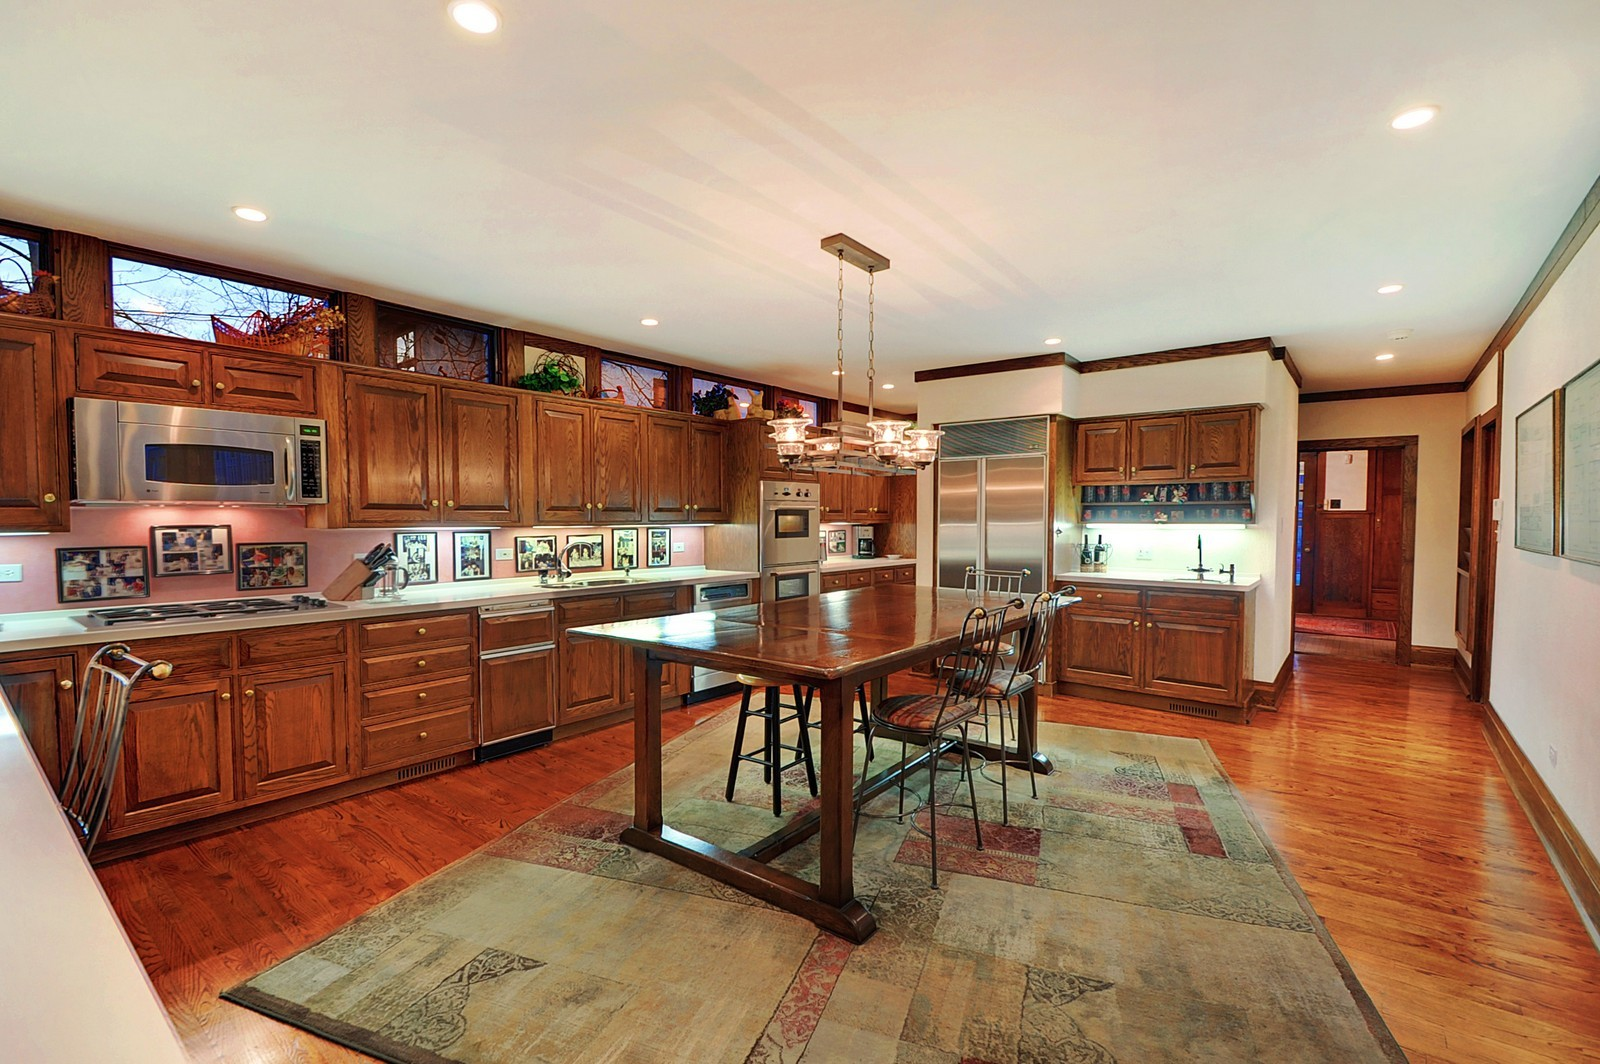 Real Estate Photography - 2700 Lincoln St, Evanston, IL, 60201 - Kitchen